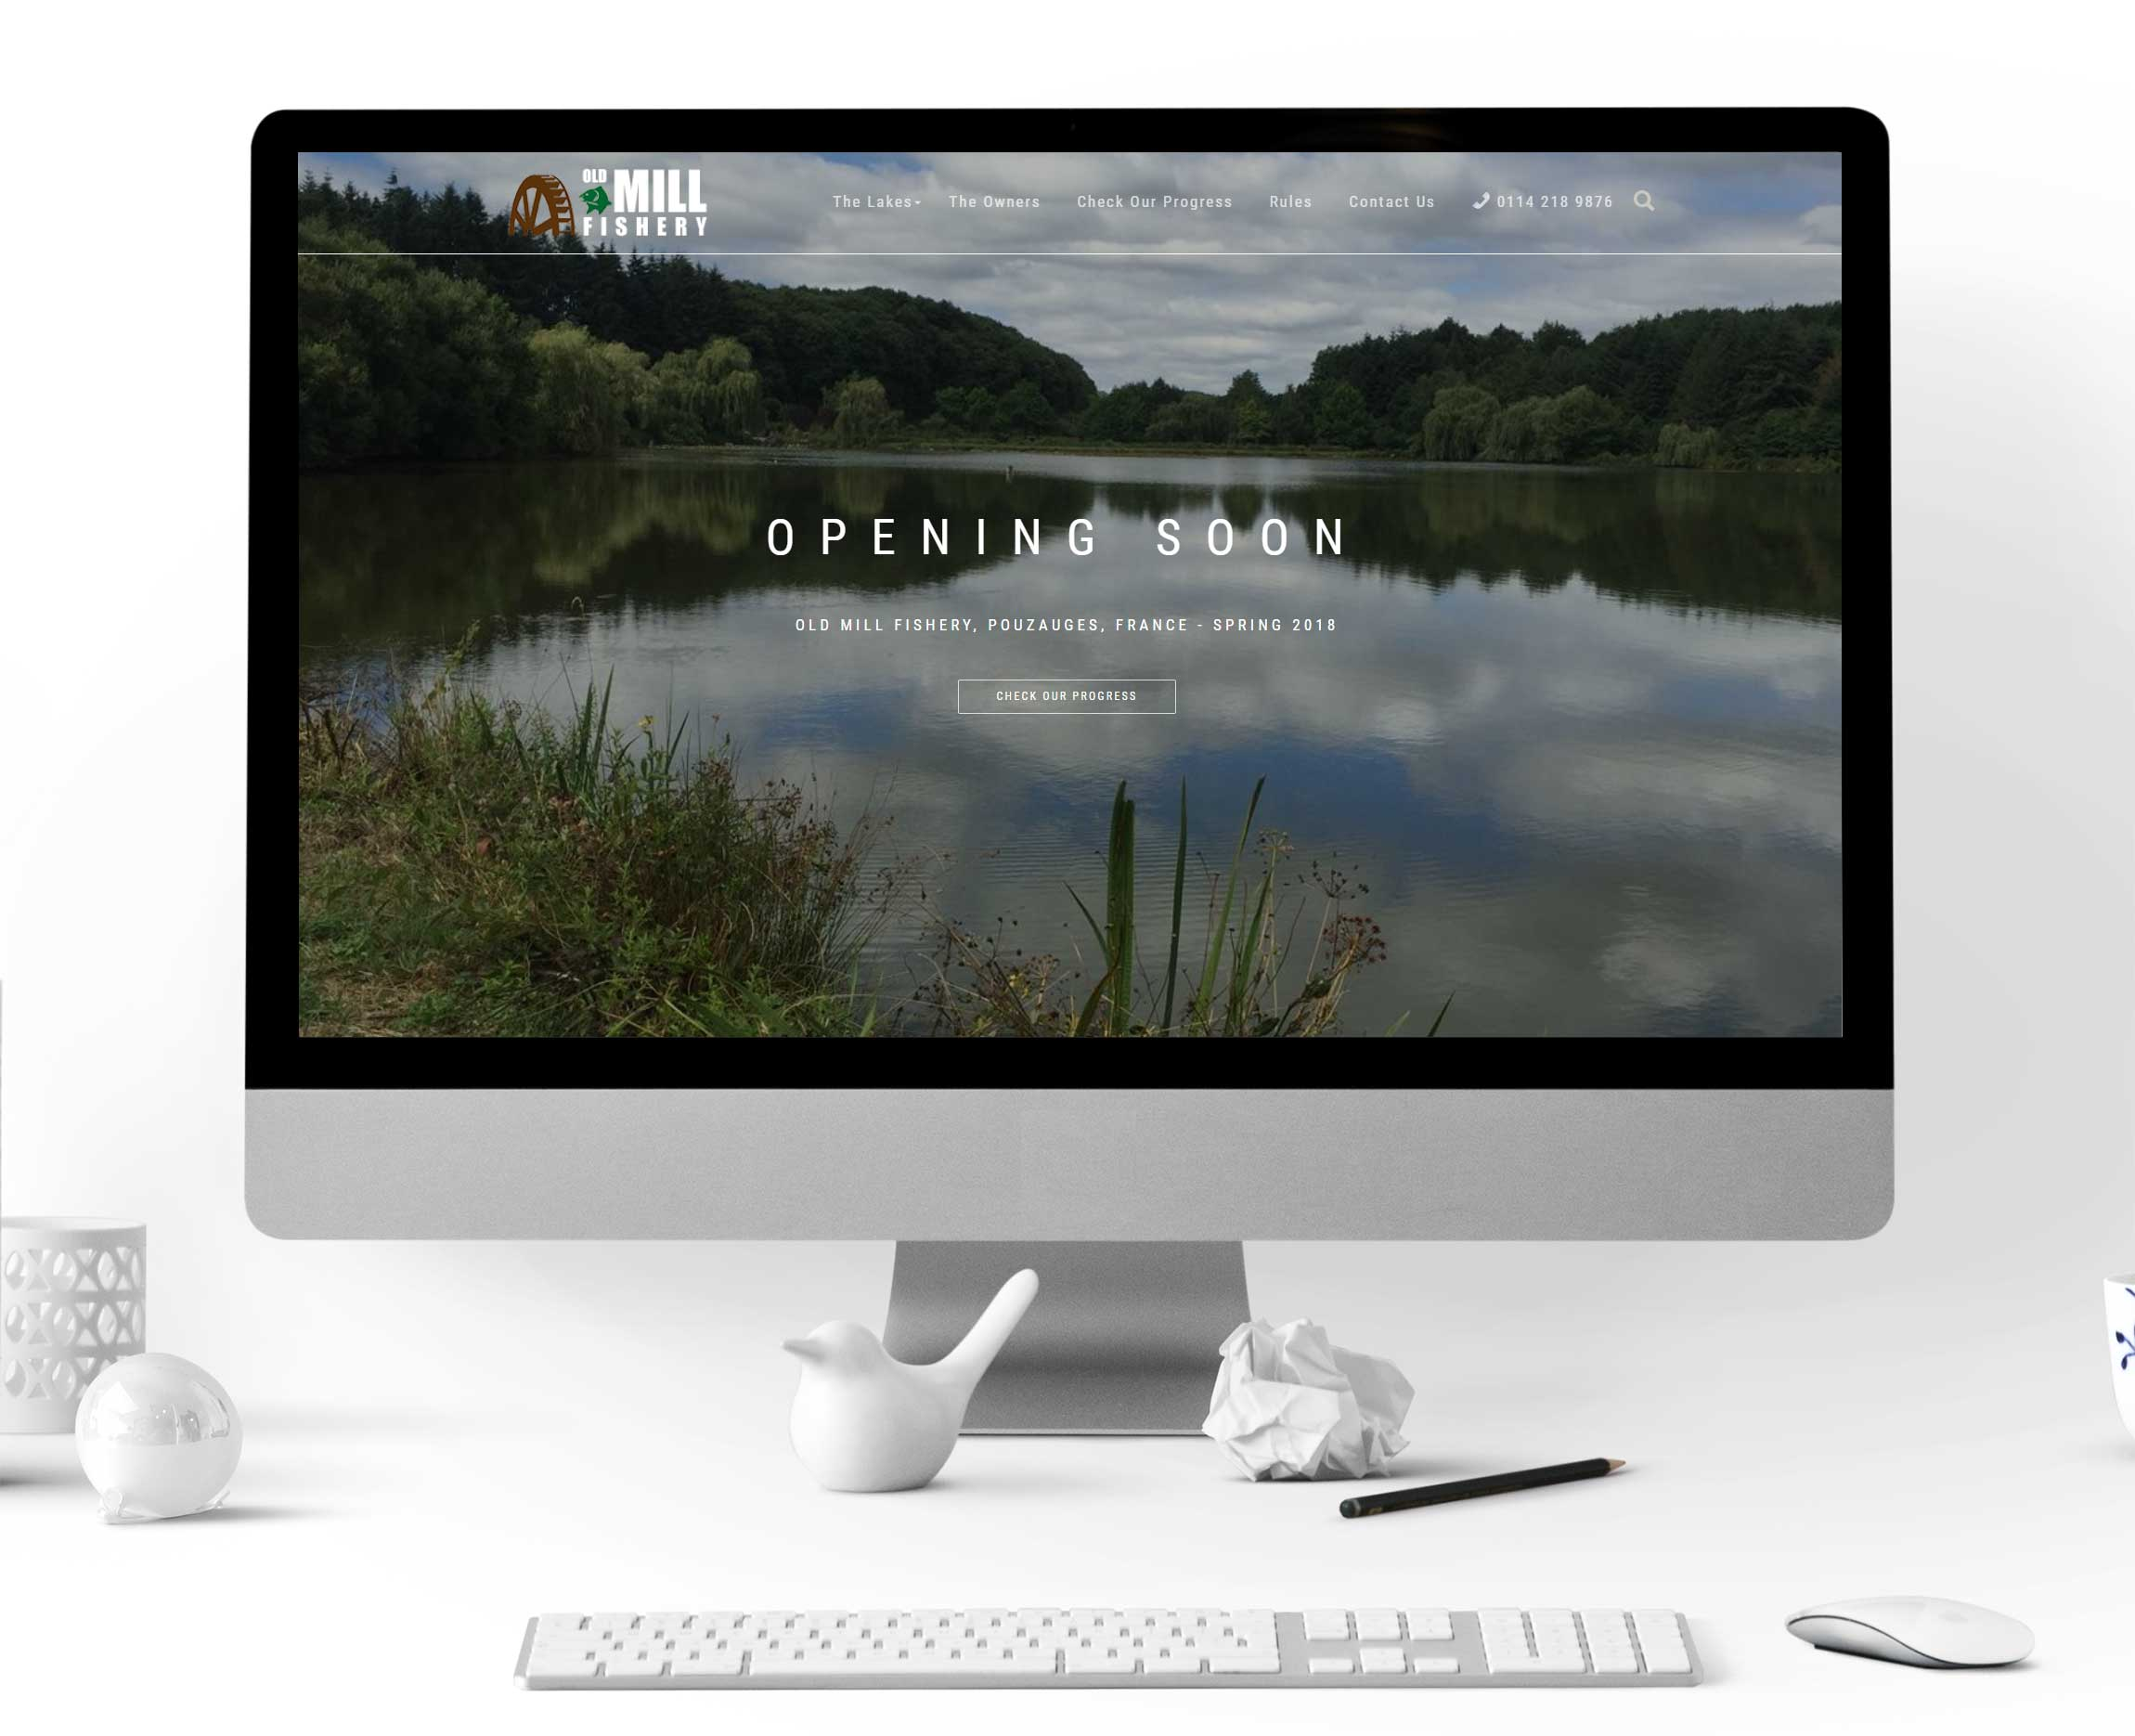 oldmill_beta_monitor_white_template